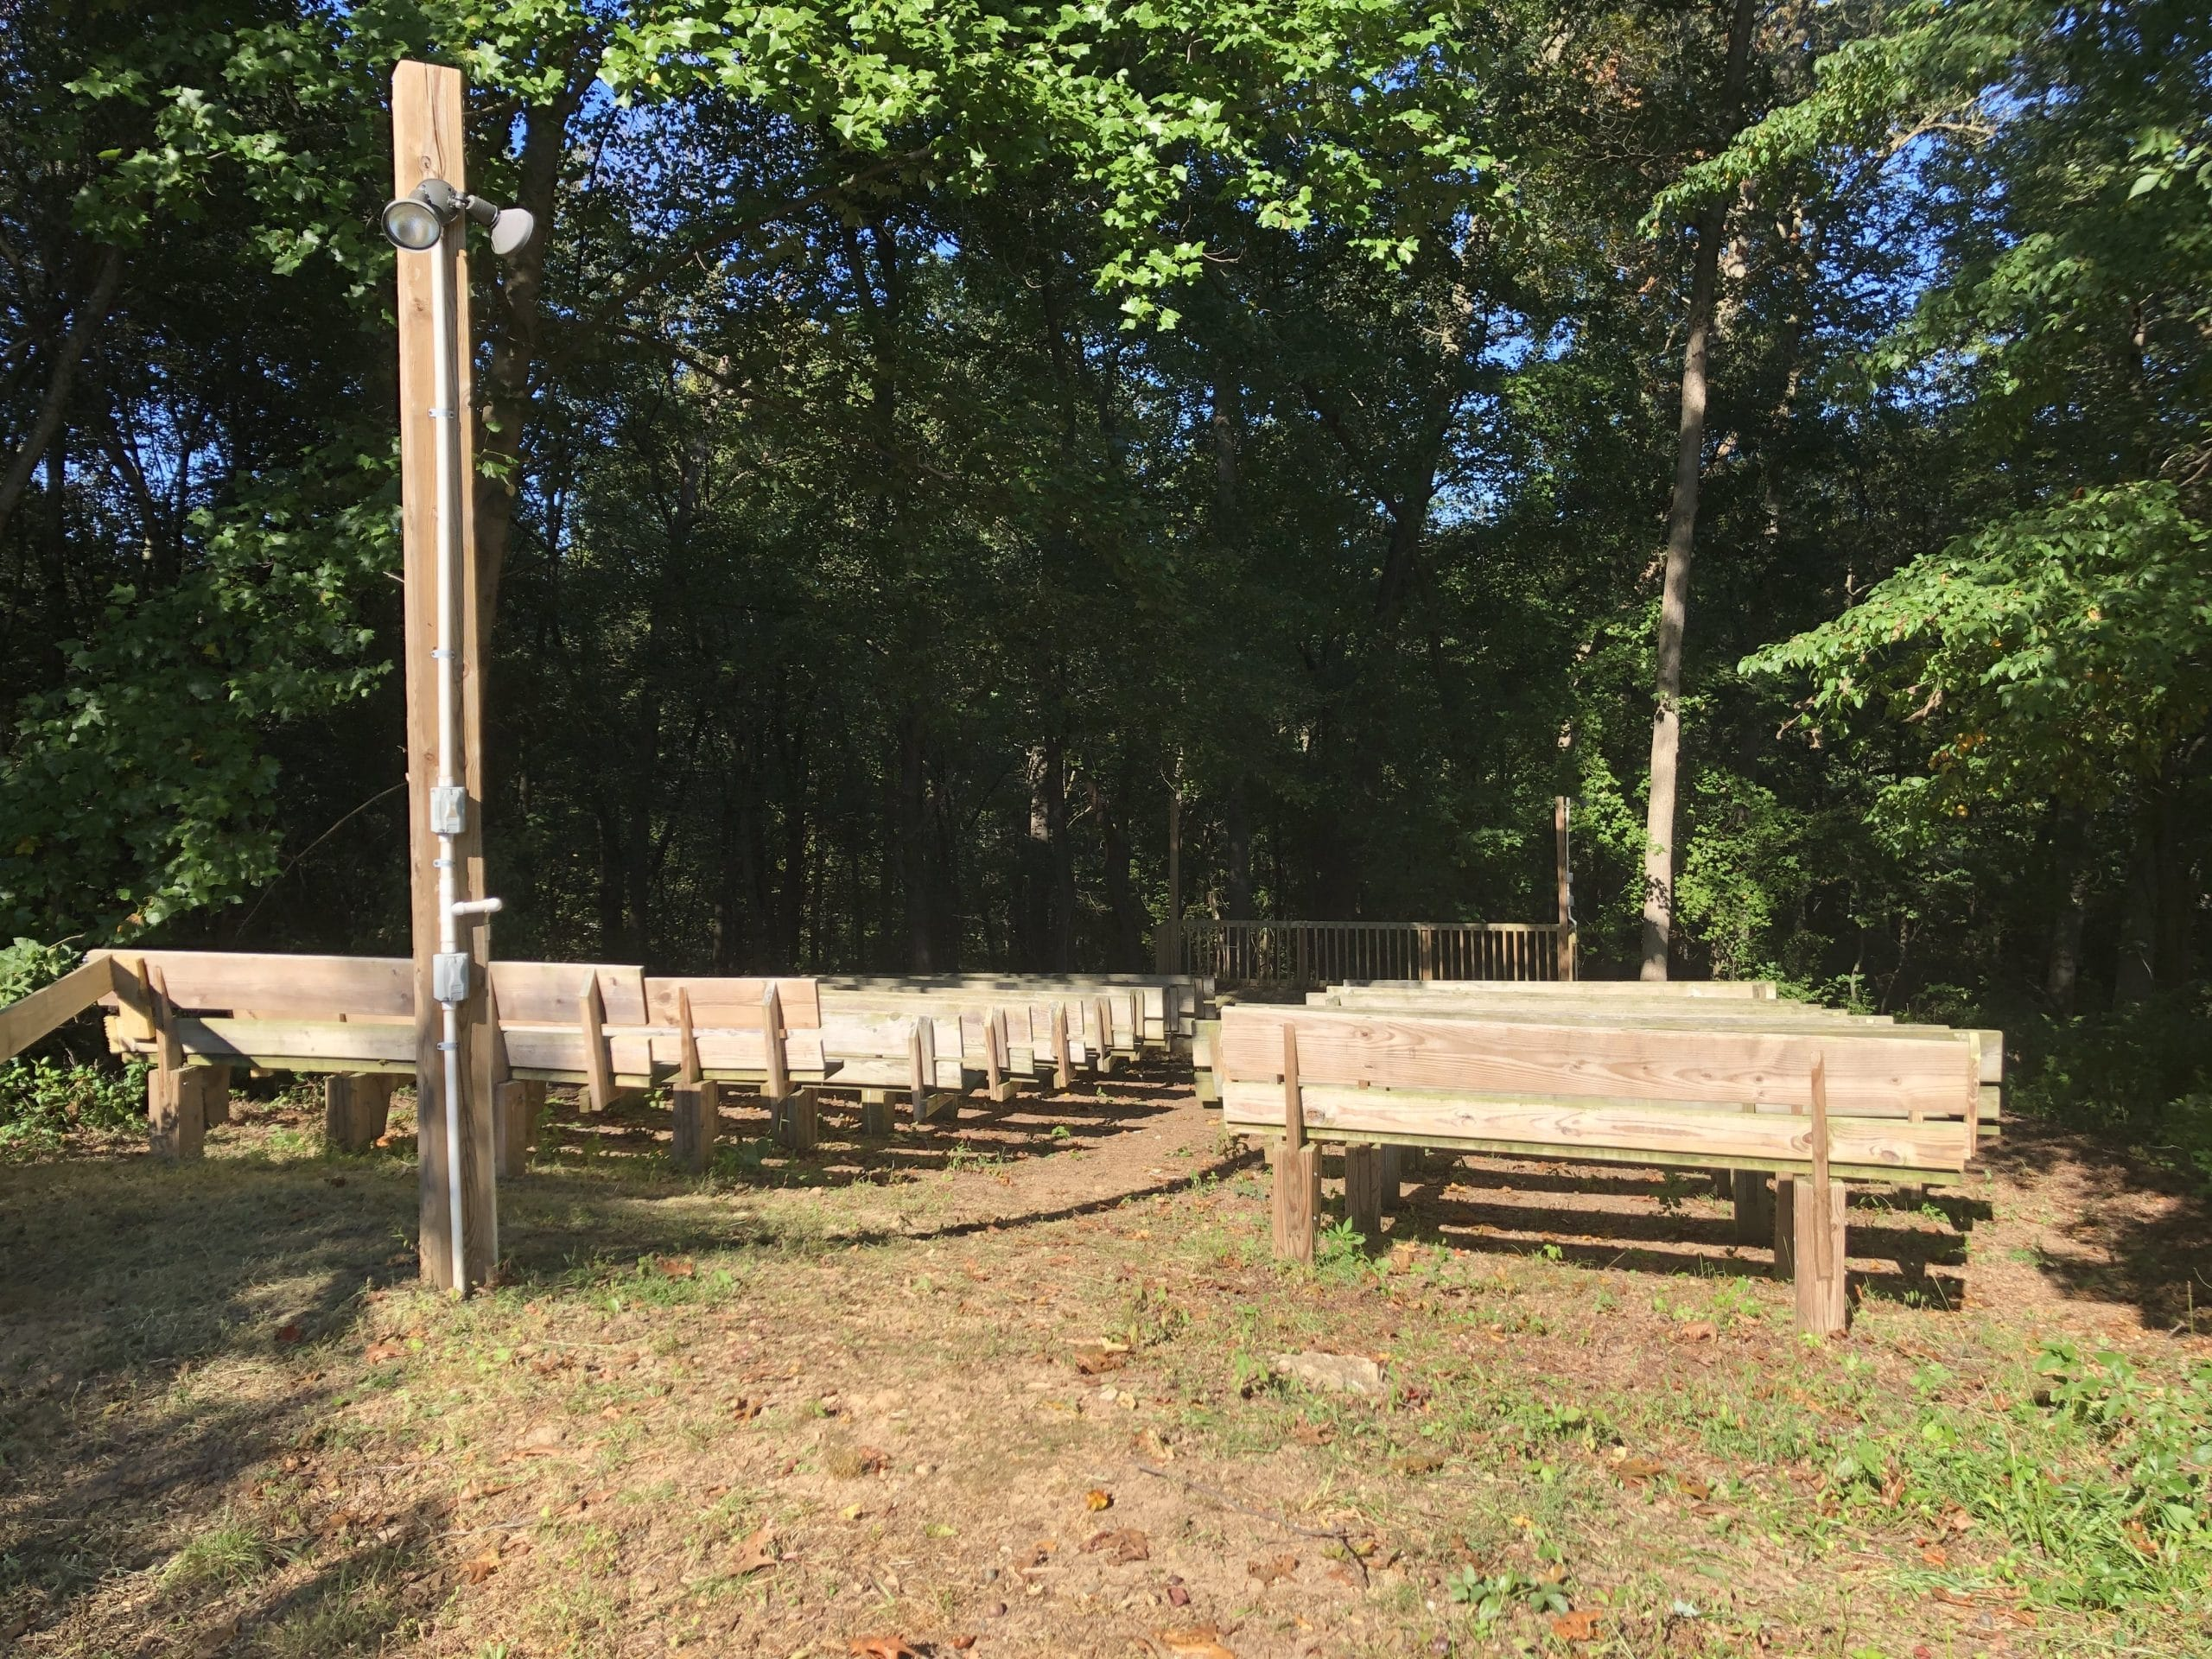 Amphitheater seating & stage